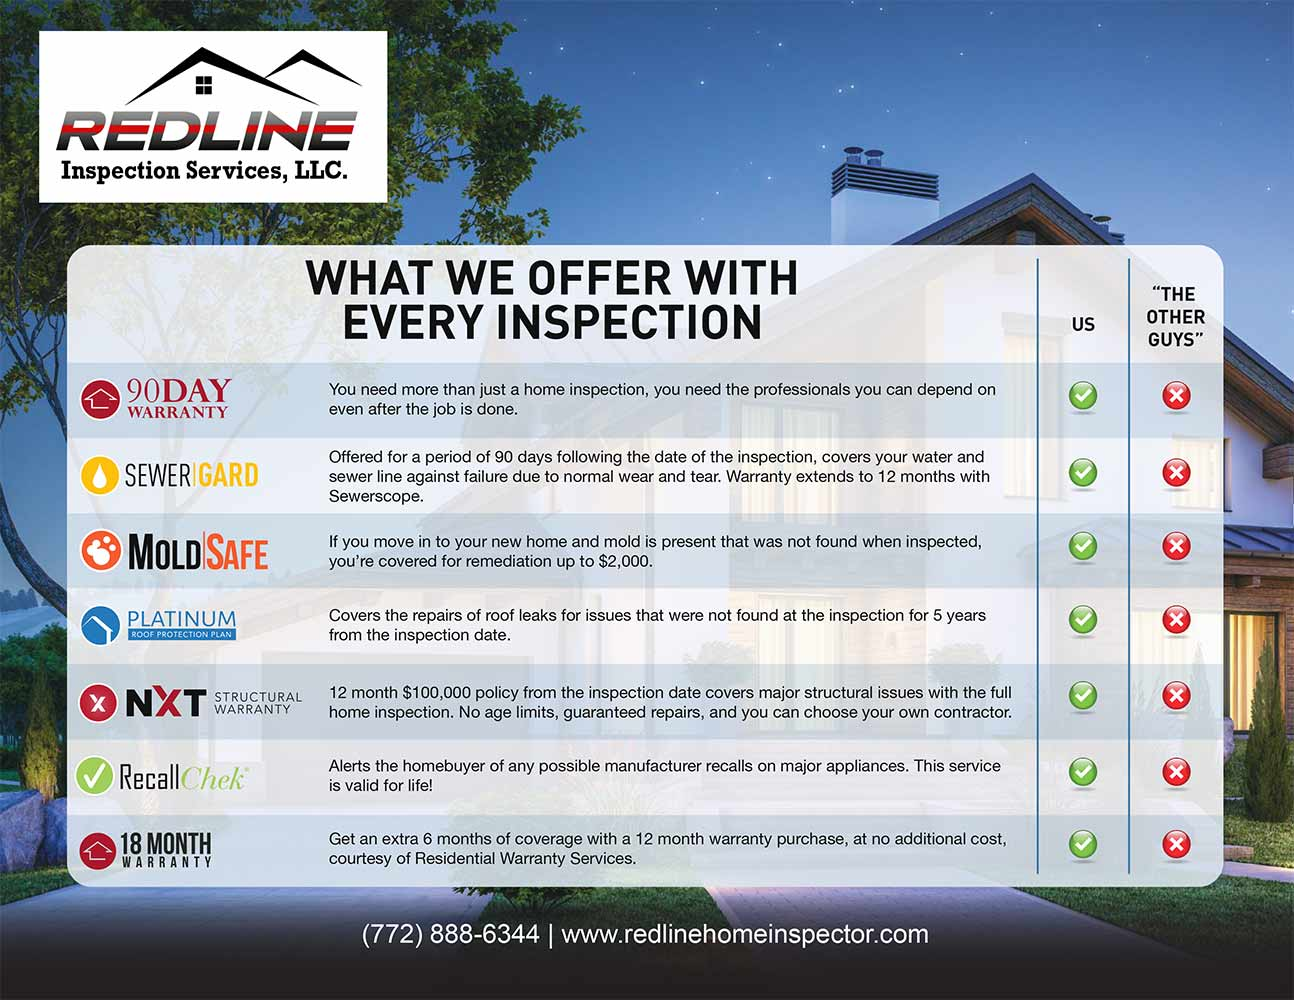 What we offer with every inspection